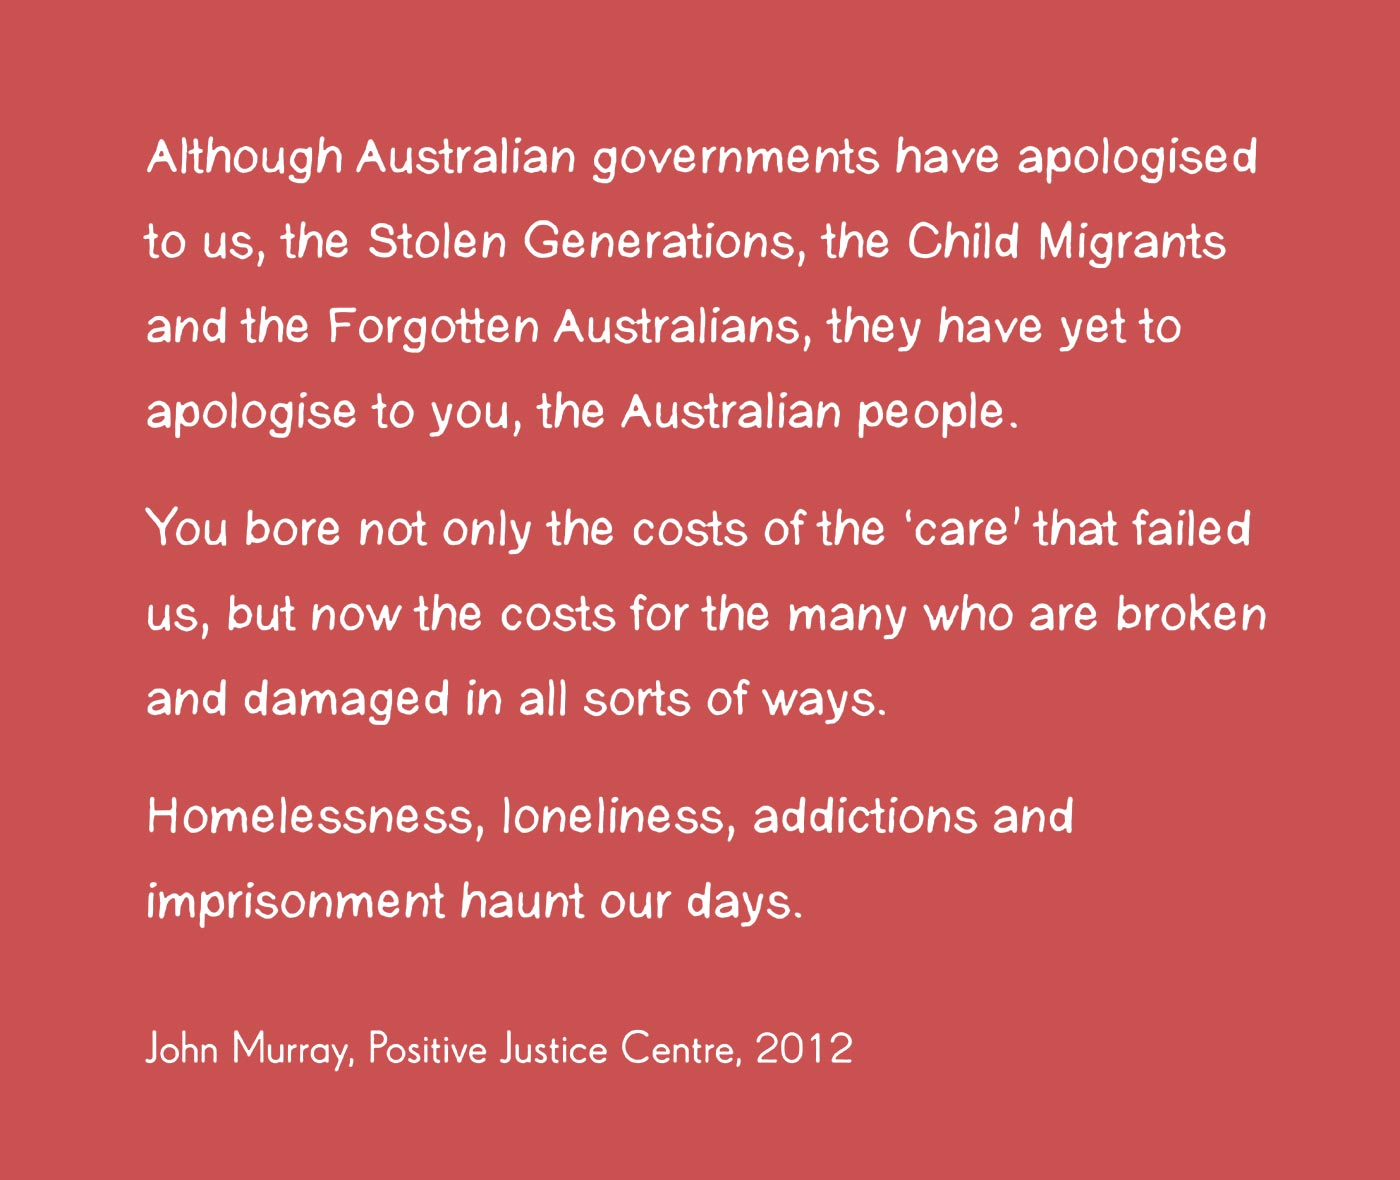 Exhibition graphic panel in black handwritten text on a white background reads 'Although Australian governmetns have apologised to us, the Stolen Generations, the Child Migrants and the Forgotten Australians, they have yet to apologise to you, the Australian people. You bore not only the costs of the 'care' that failed us, but now the costs for the many who are broken and damaged in all sorts of ways. Homelessness, loneliness, addictions and imprisonment haunt our days,' attributed to 'John Murray, Positive Justice Centre, 2011'.  - click to view larger image